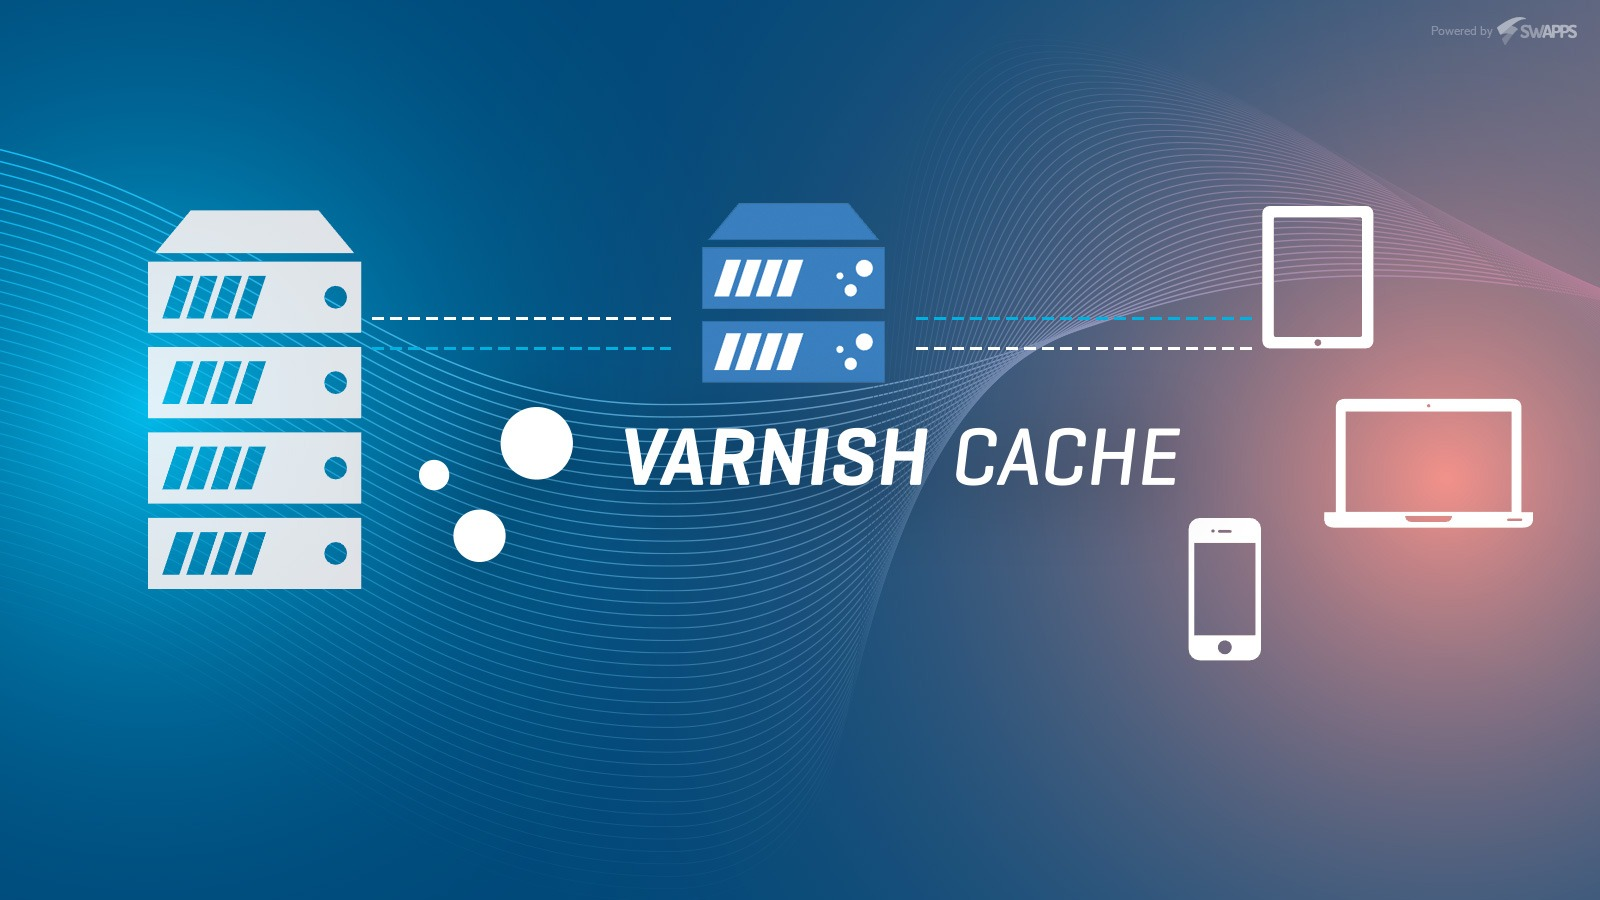 Varnish cache server